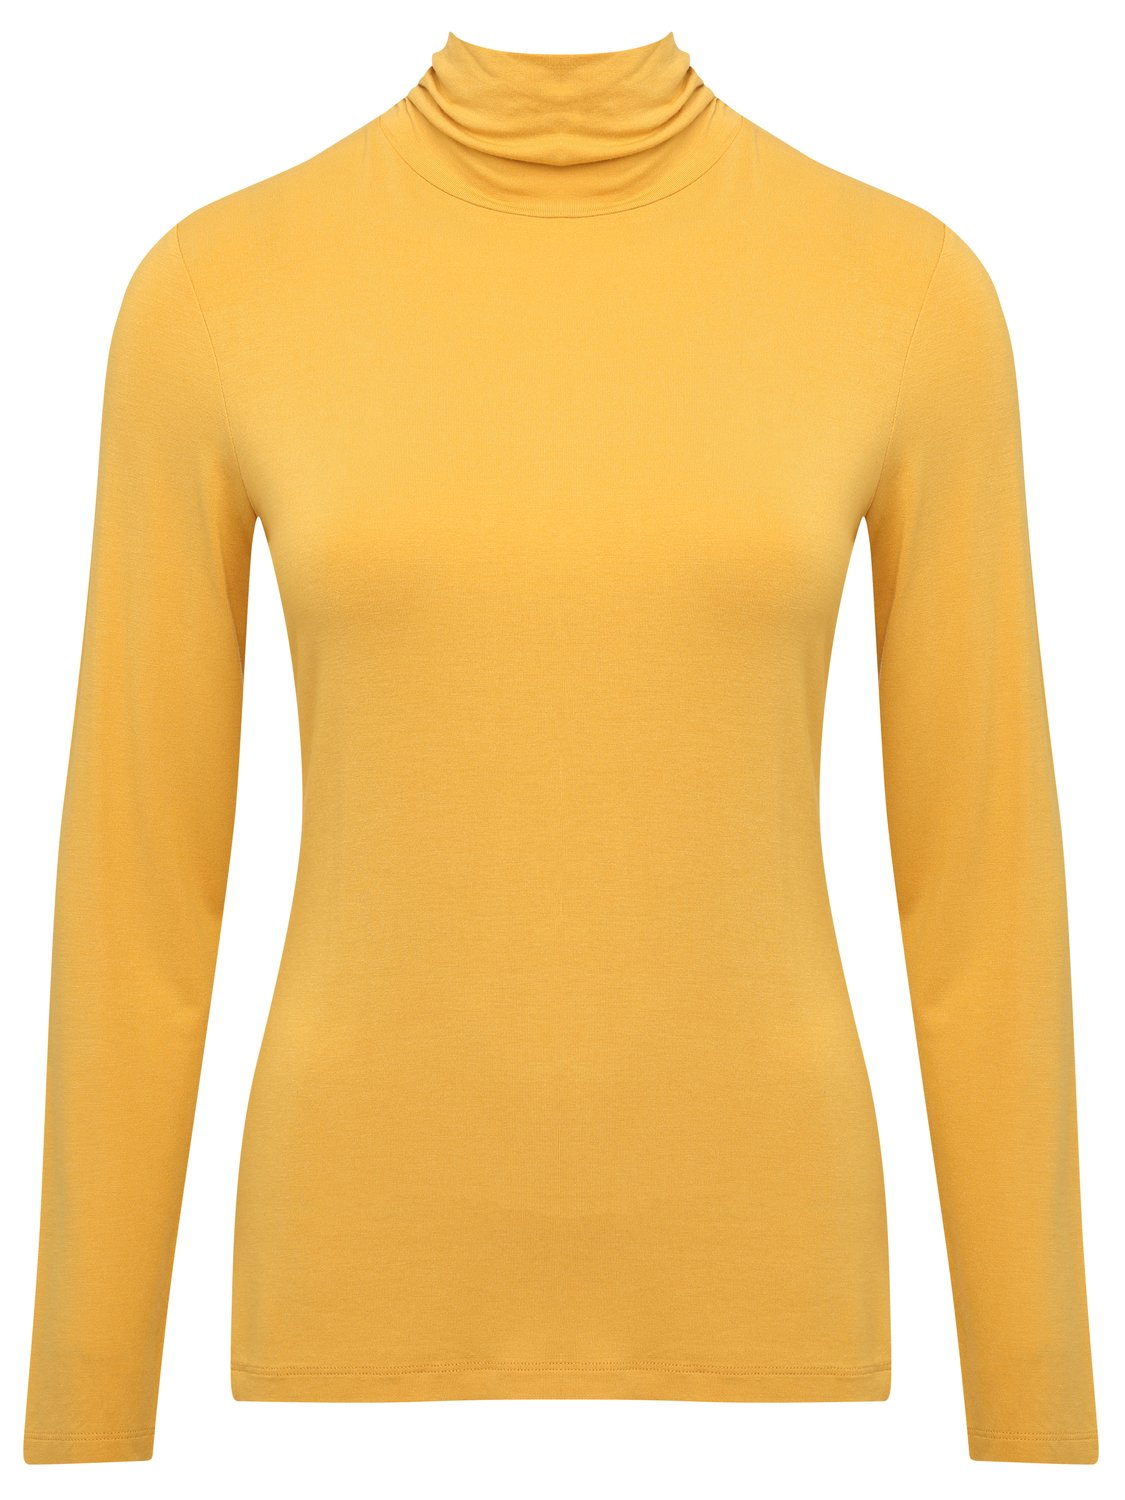 women's ladies stretch jersey long sleeve roll neck top